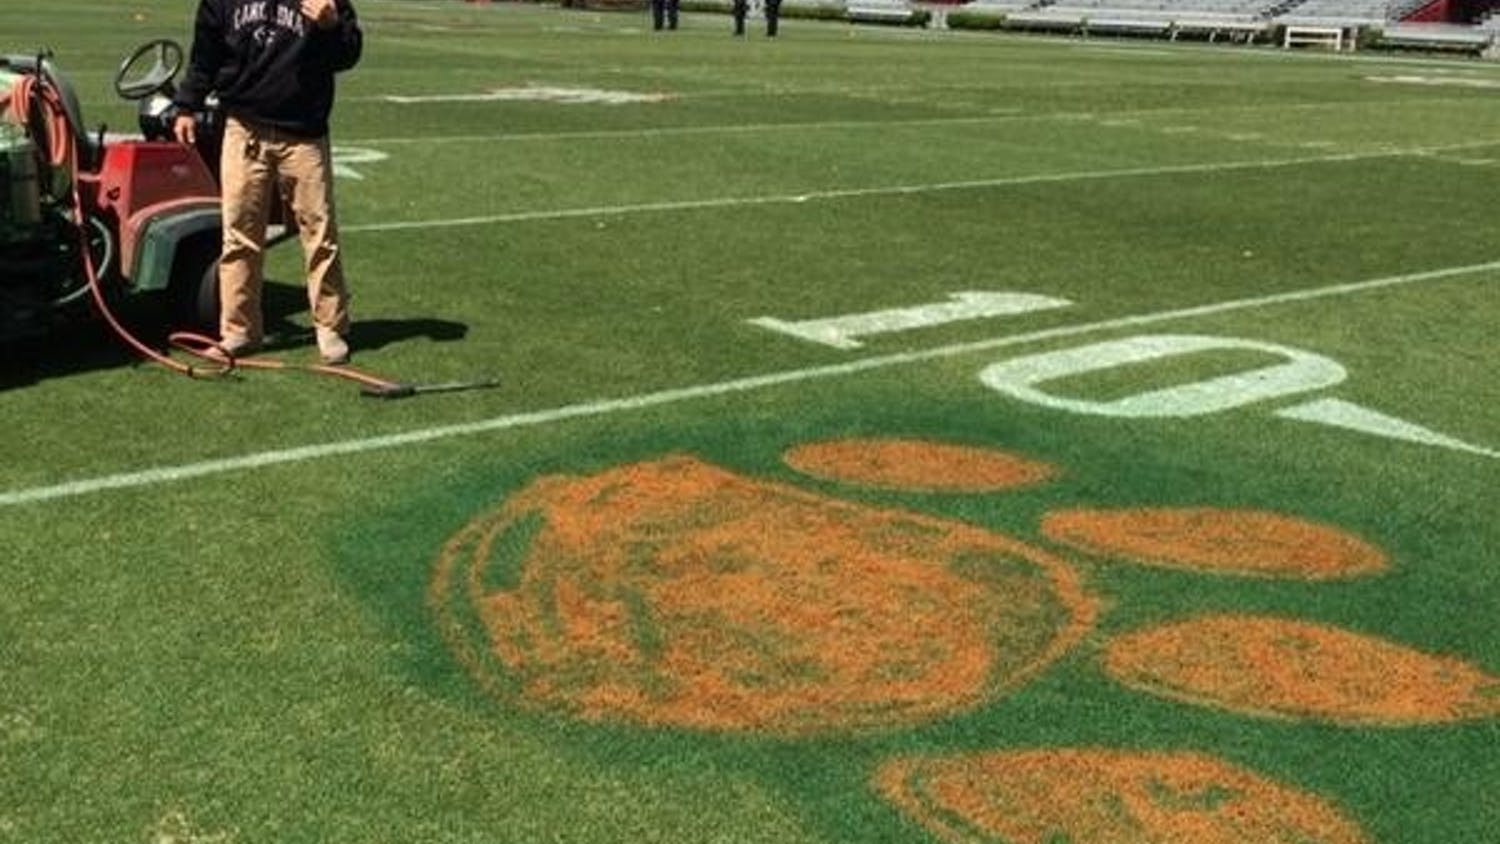 USC strength and conditioning coach Joe Connolly posted this photo of the tiger paw, whose creator is not yet known, on Twitter Thursday.